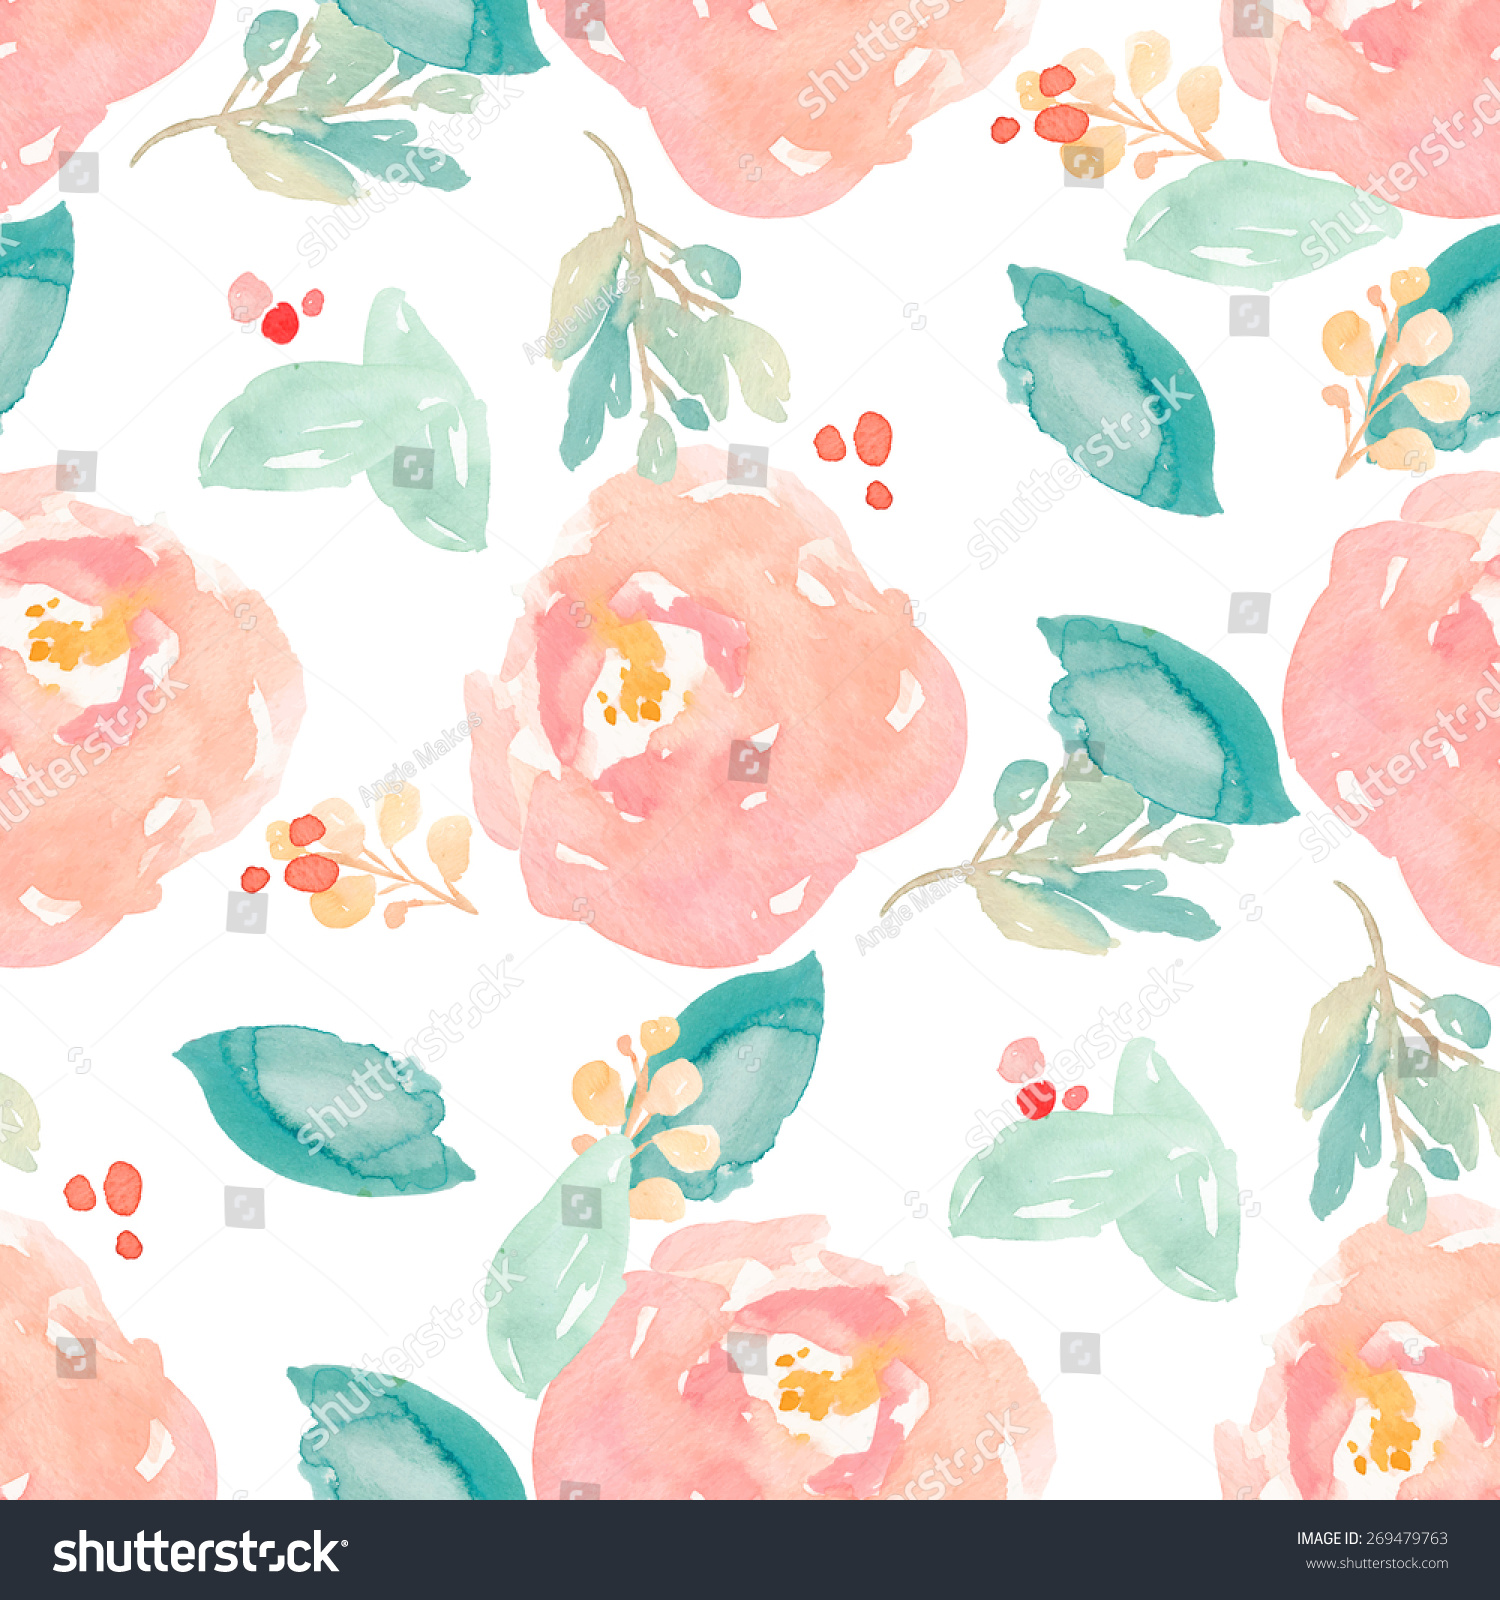 Seamless Cute Watercolor Floral Background Painted Stock